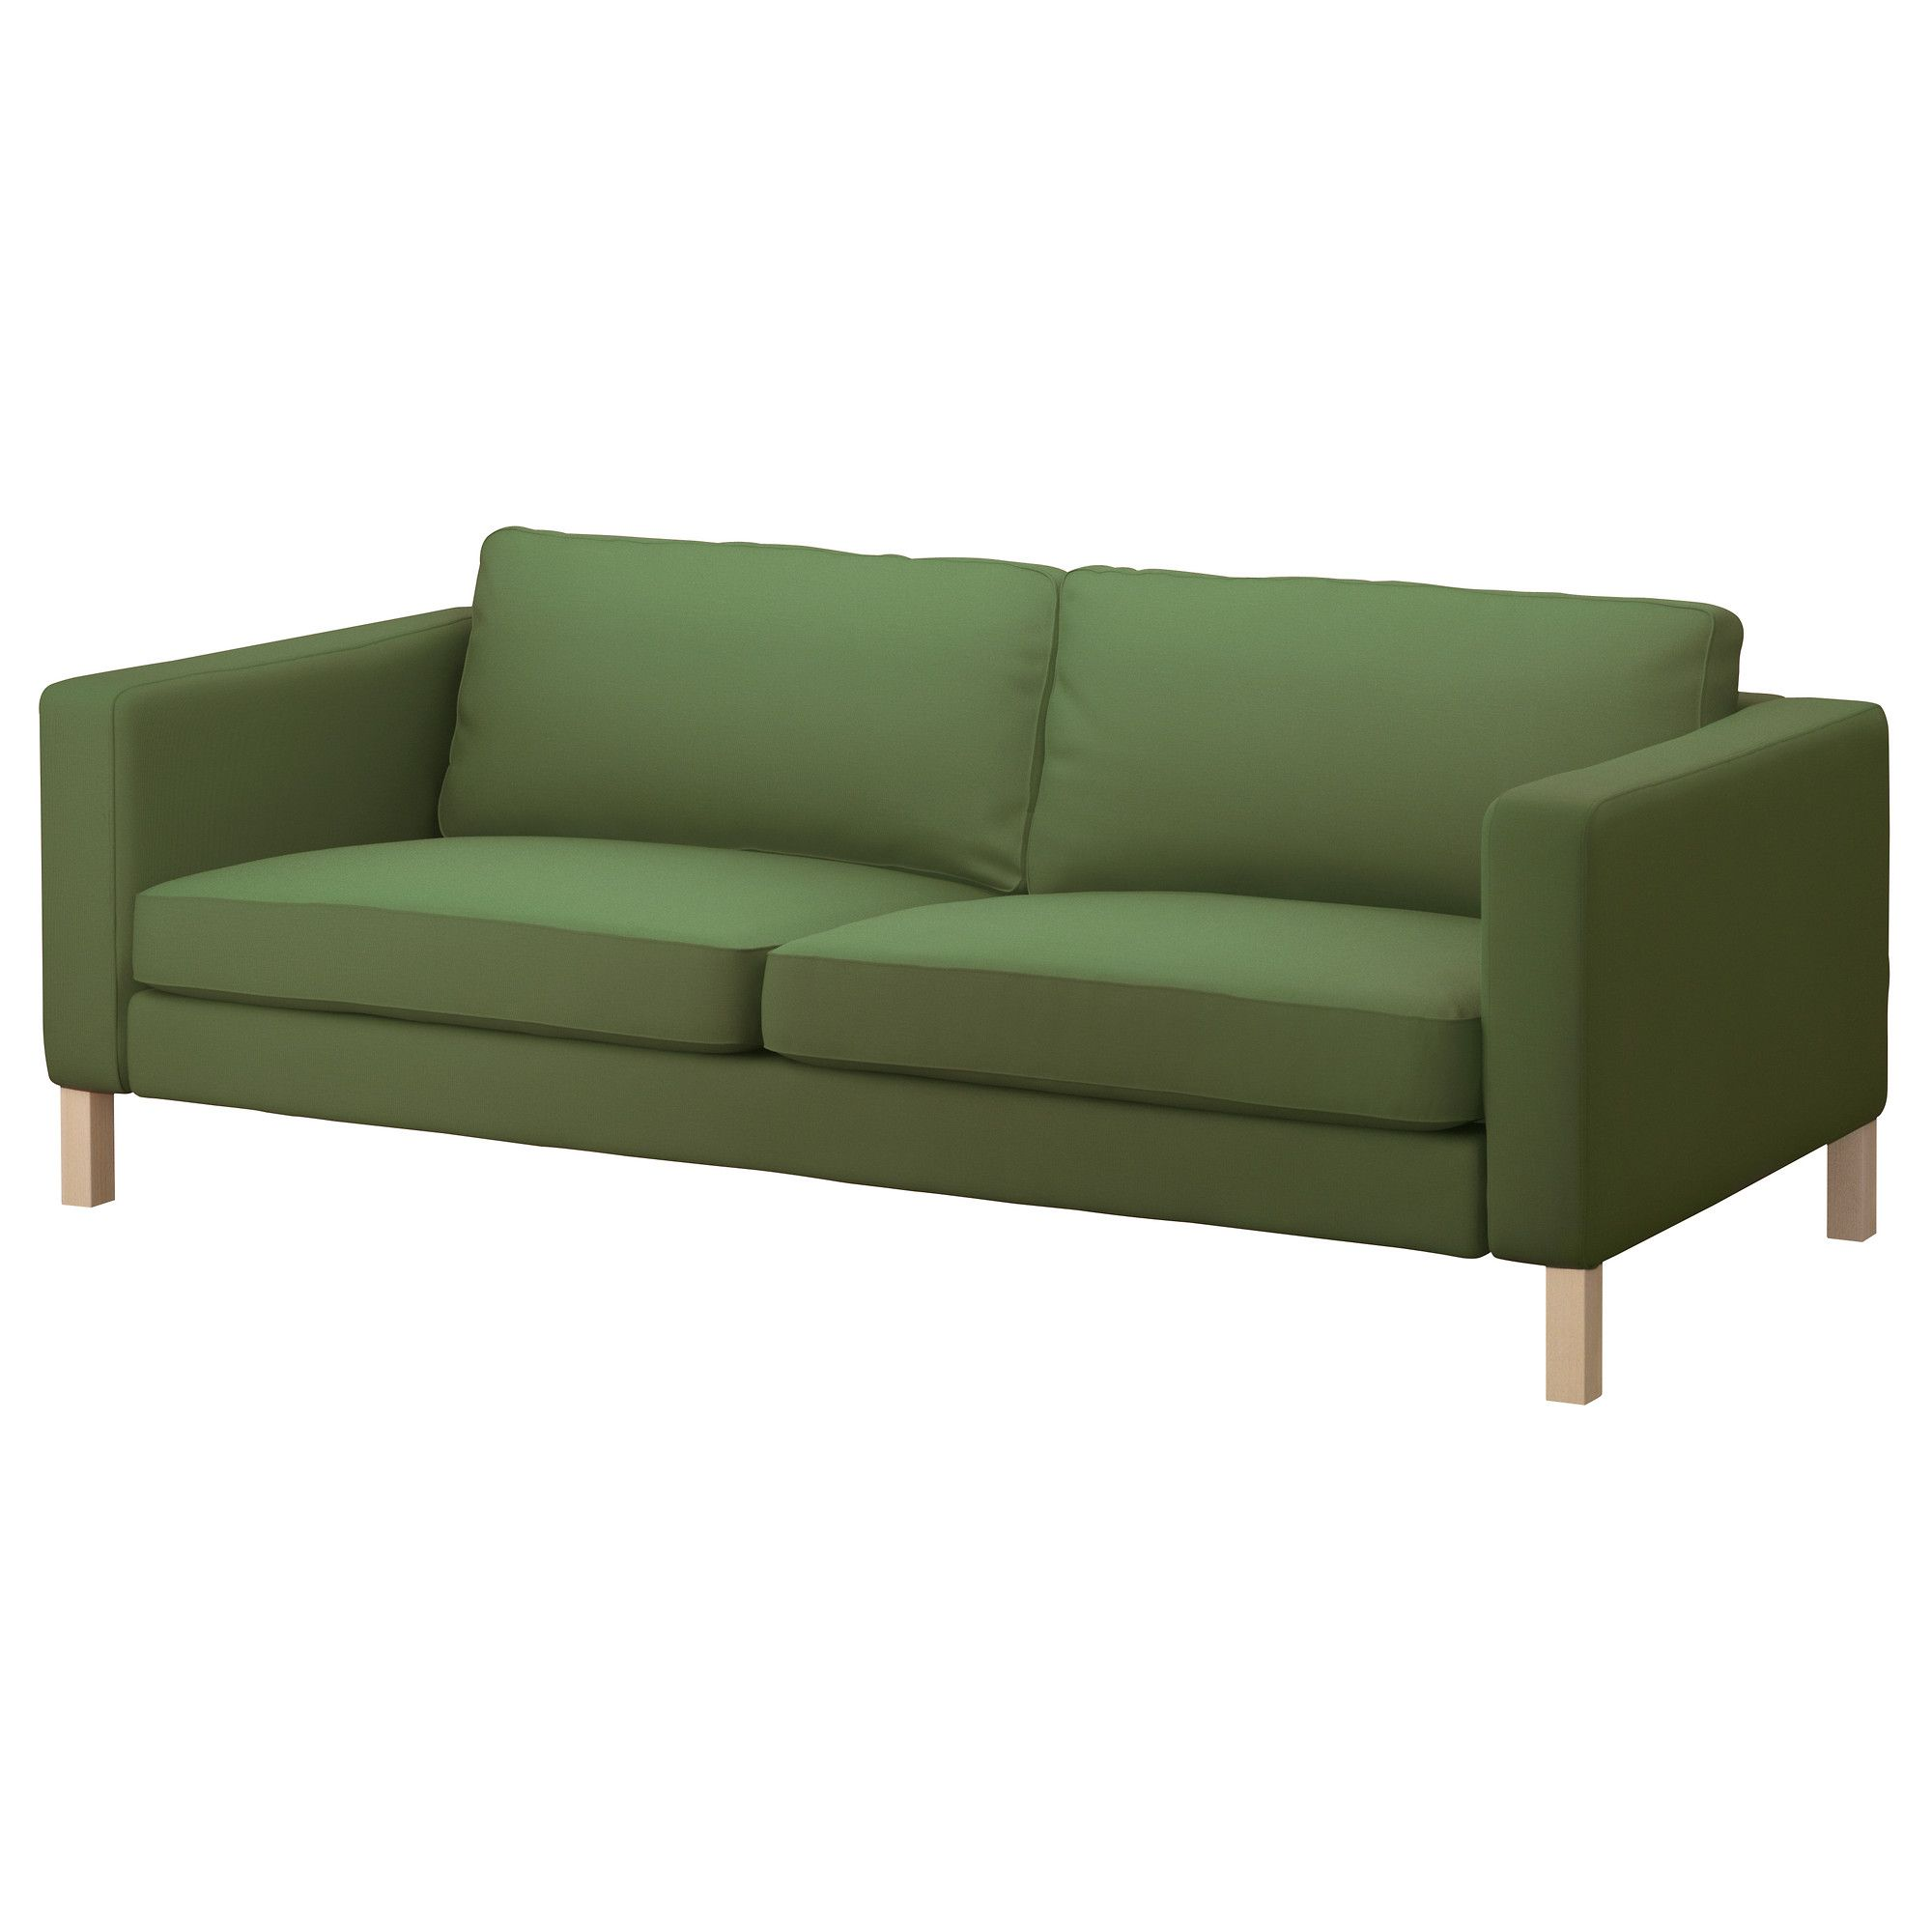 Fabric Two Seater Sofas & Small Fabric Sofas